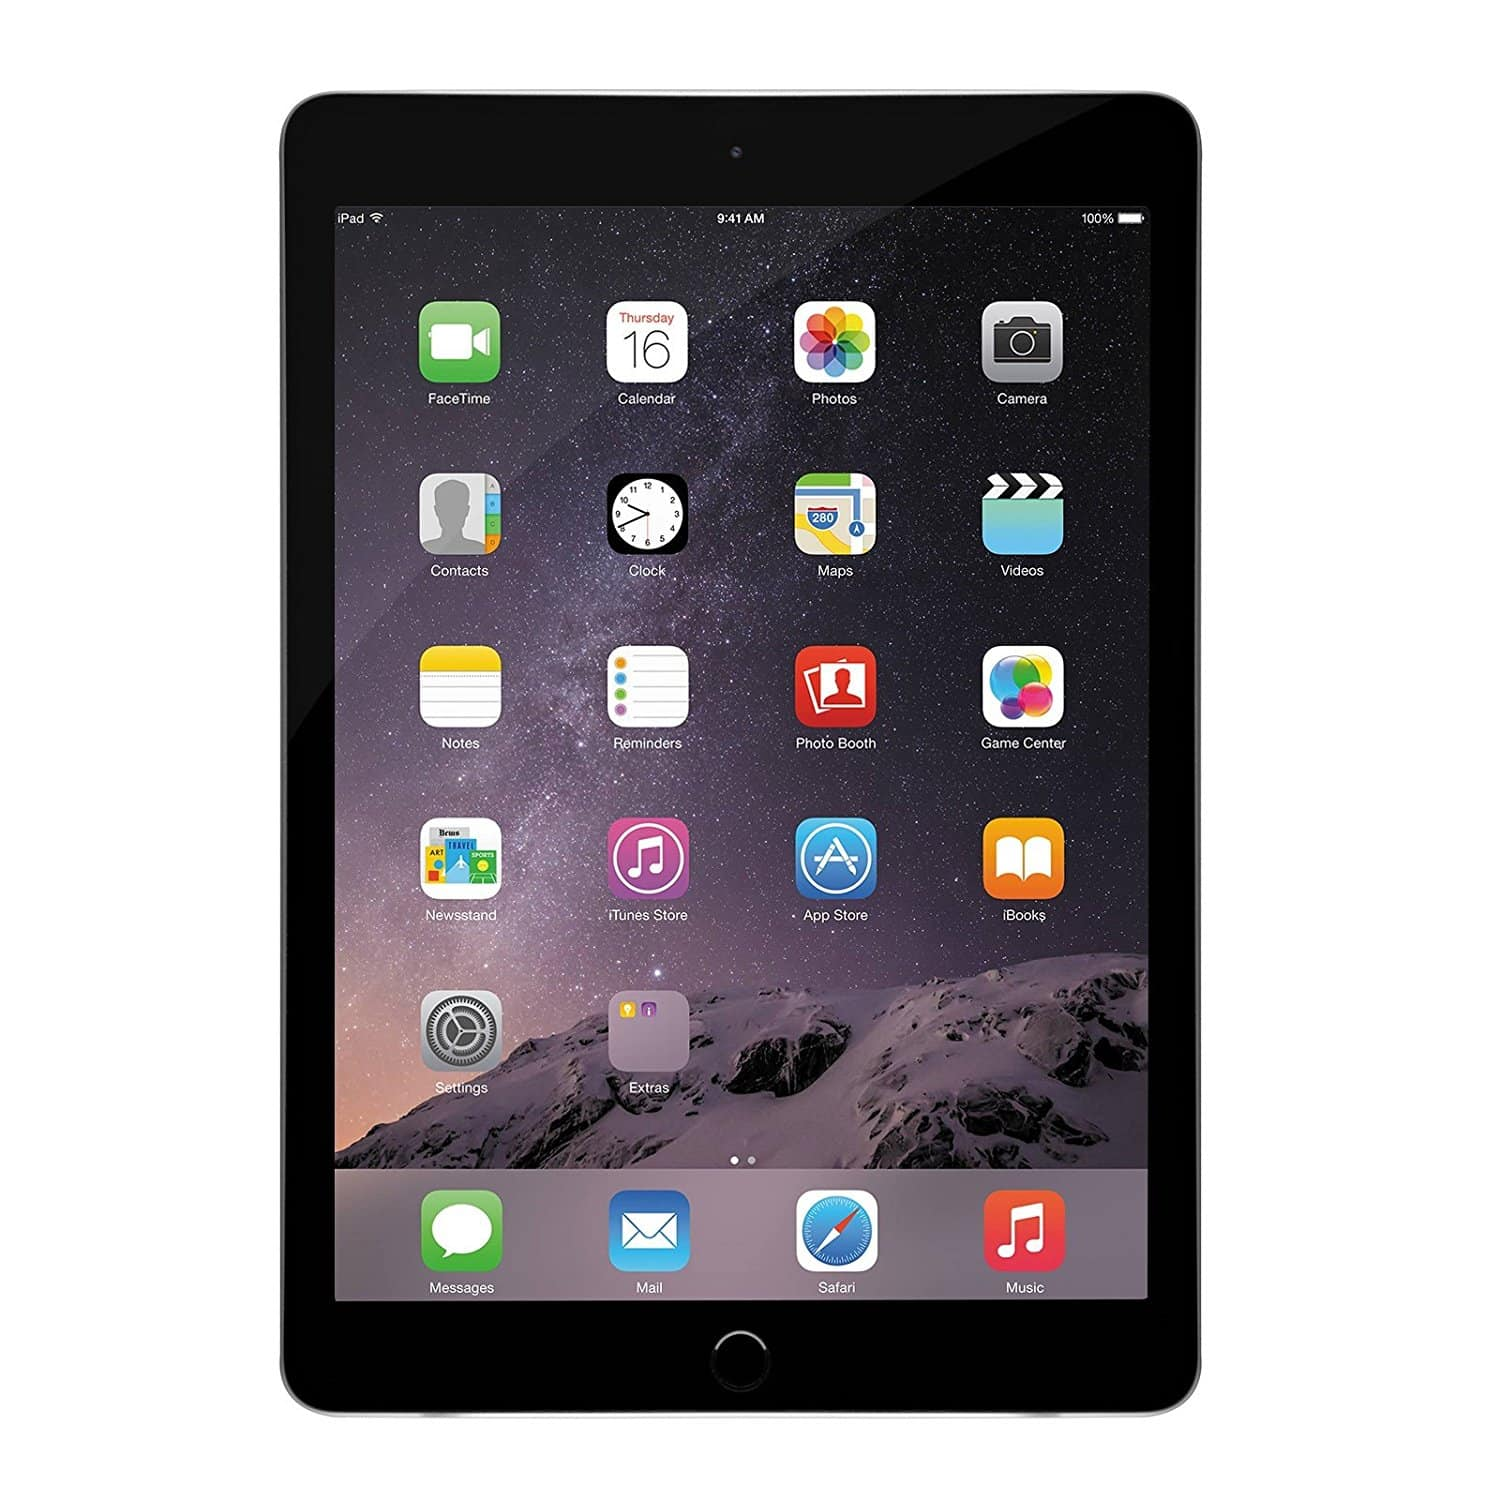 Apple iPad Air tablet under $300